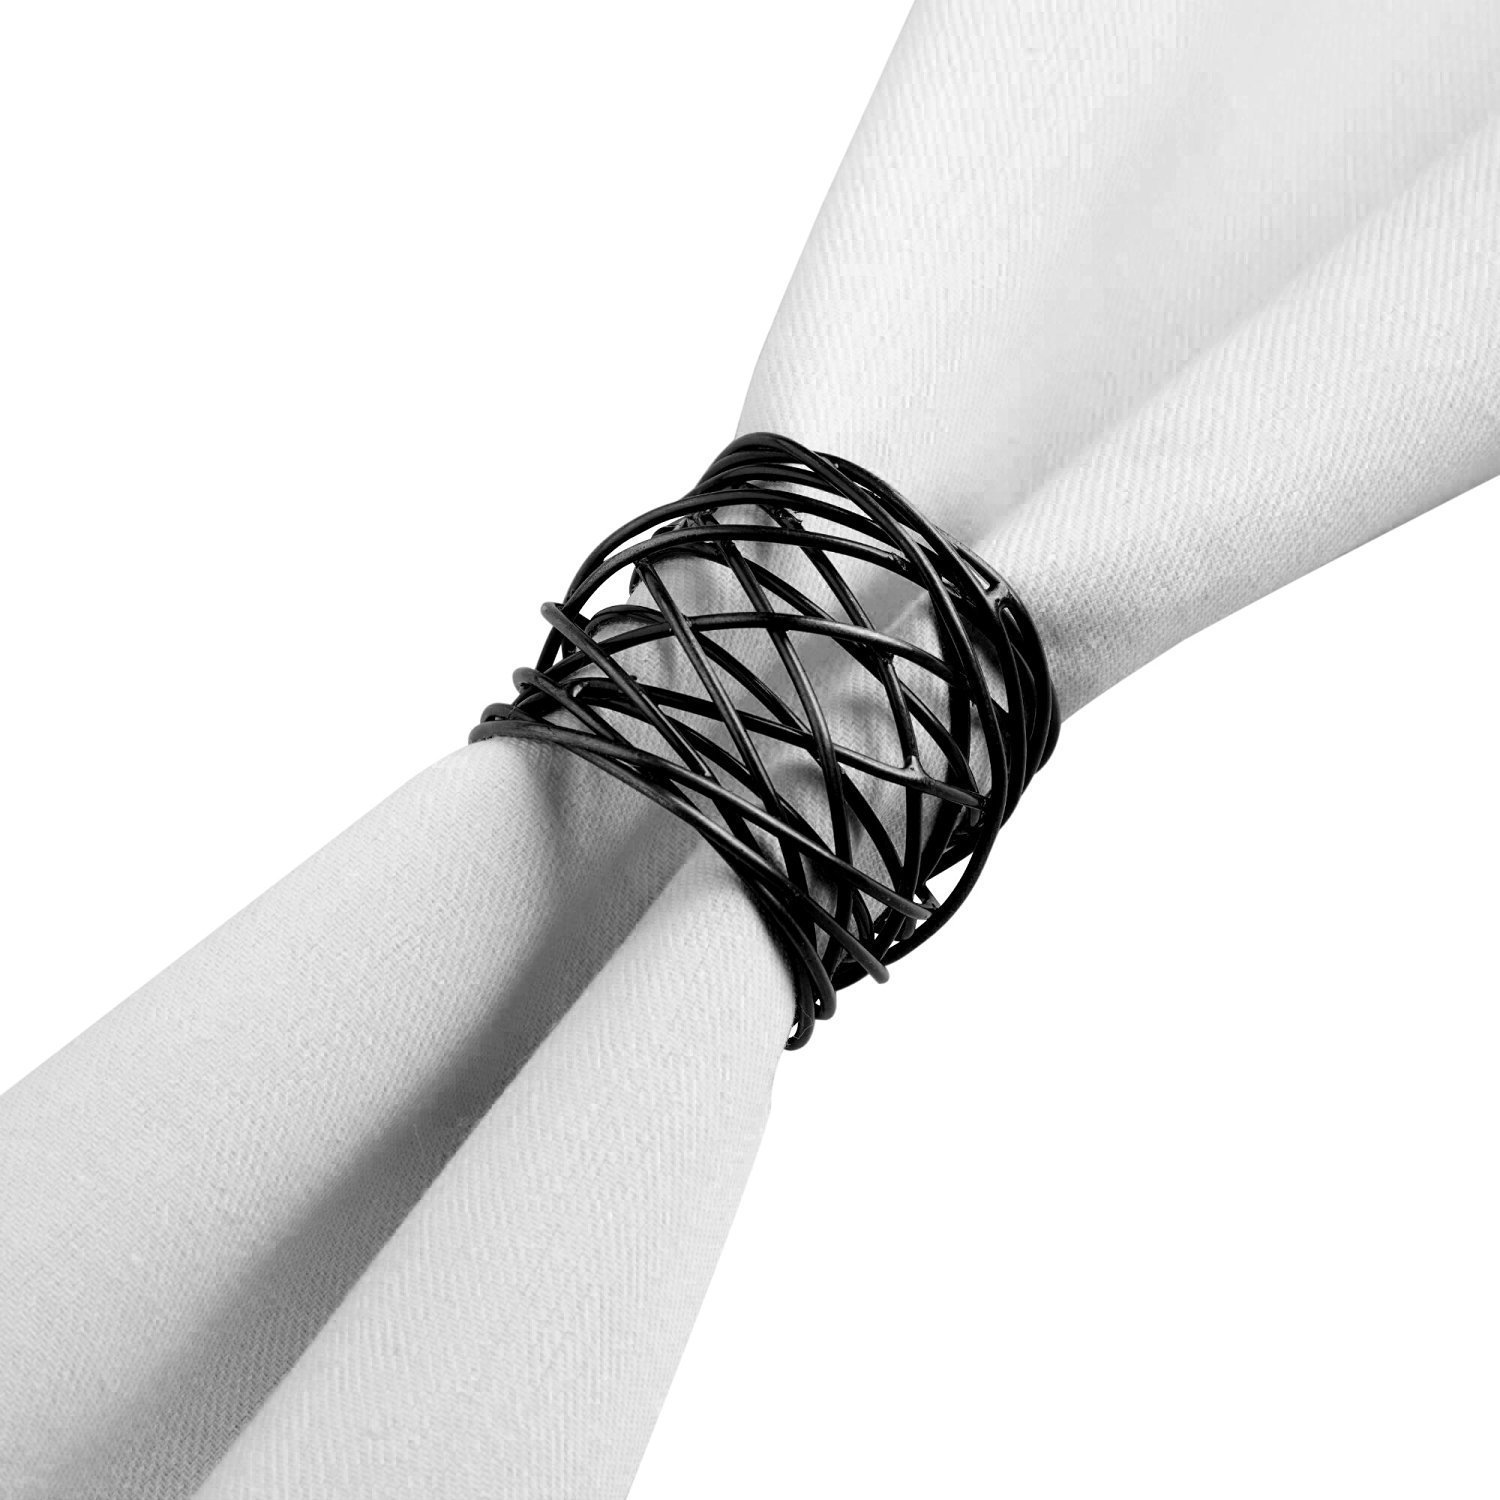 worldexplorer Handmade Round Mesh Black Napkin Rings Holder for Dinning Table Parties Everyday, Set of 12